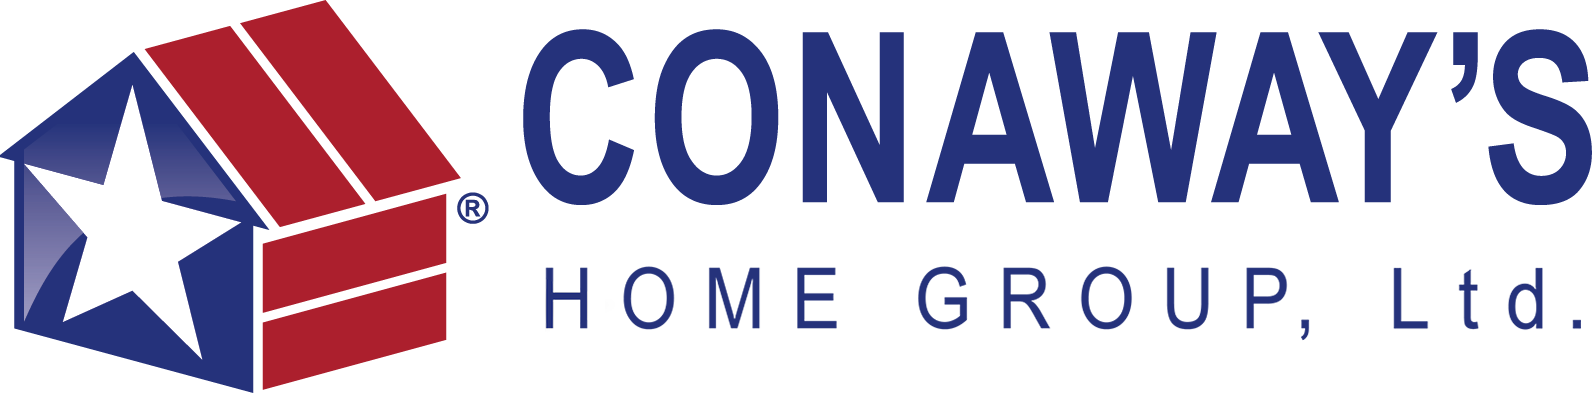 Conaway's Home Group Logo